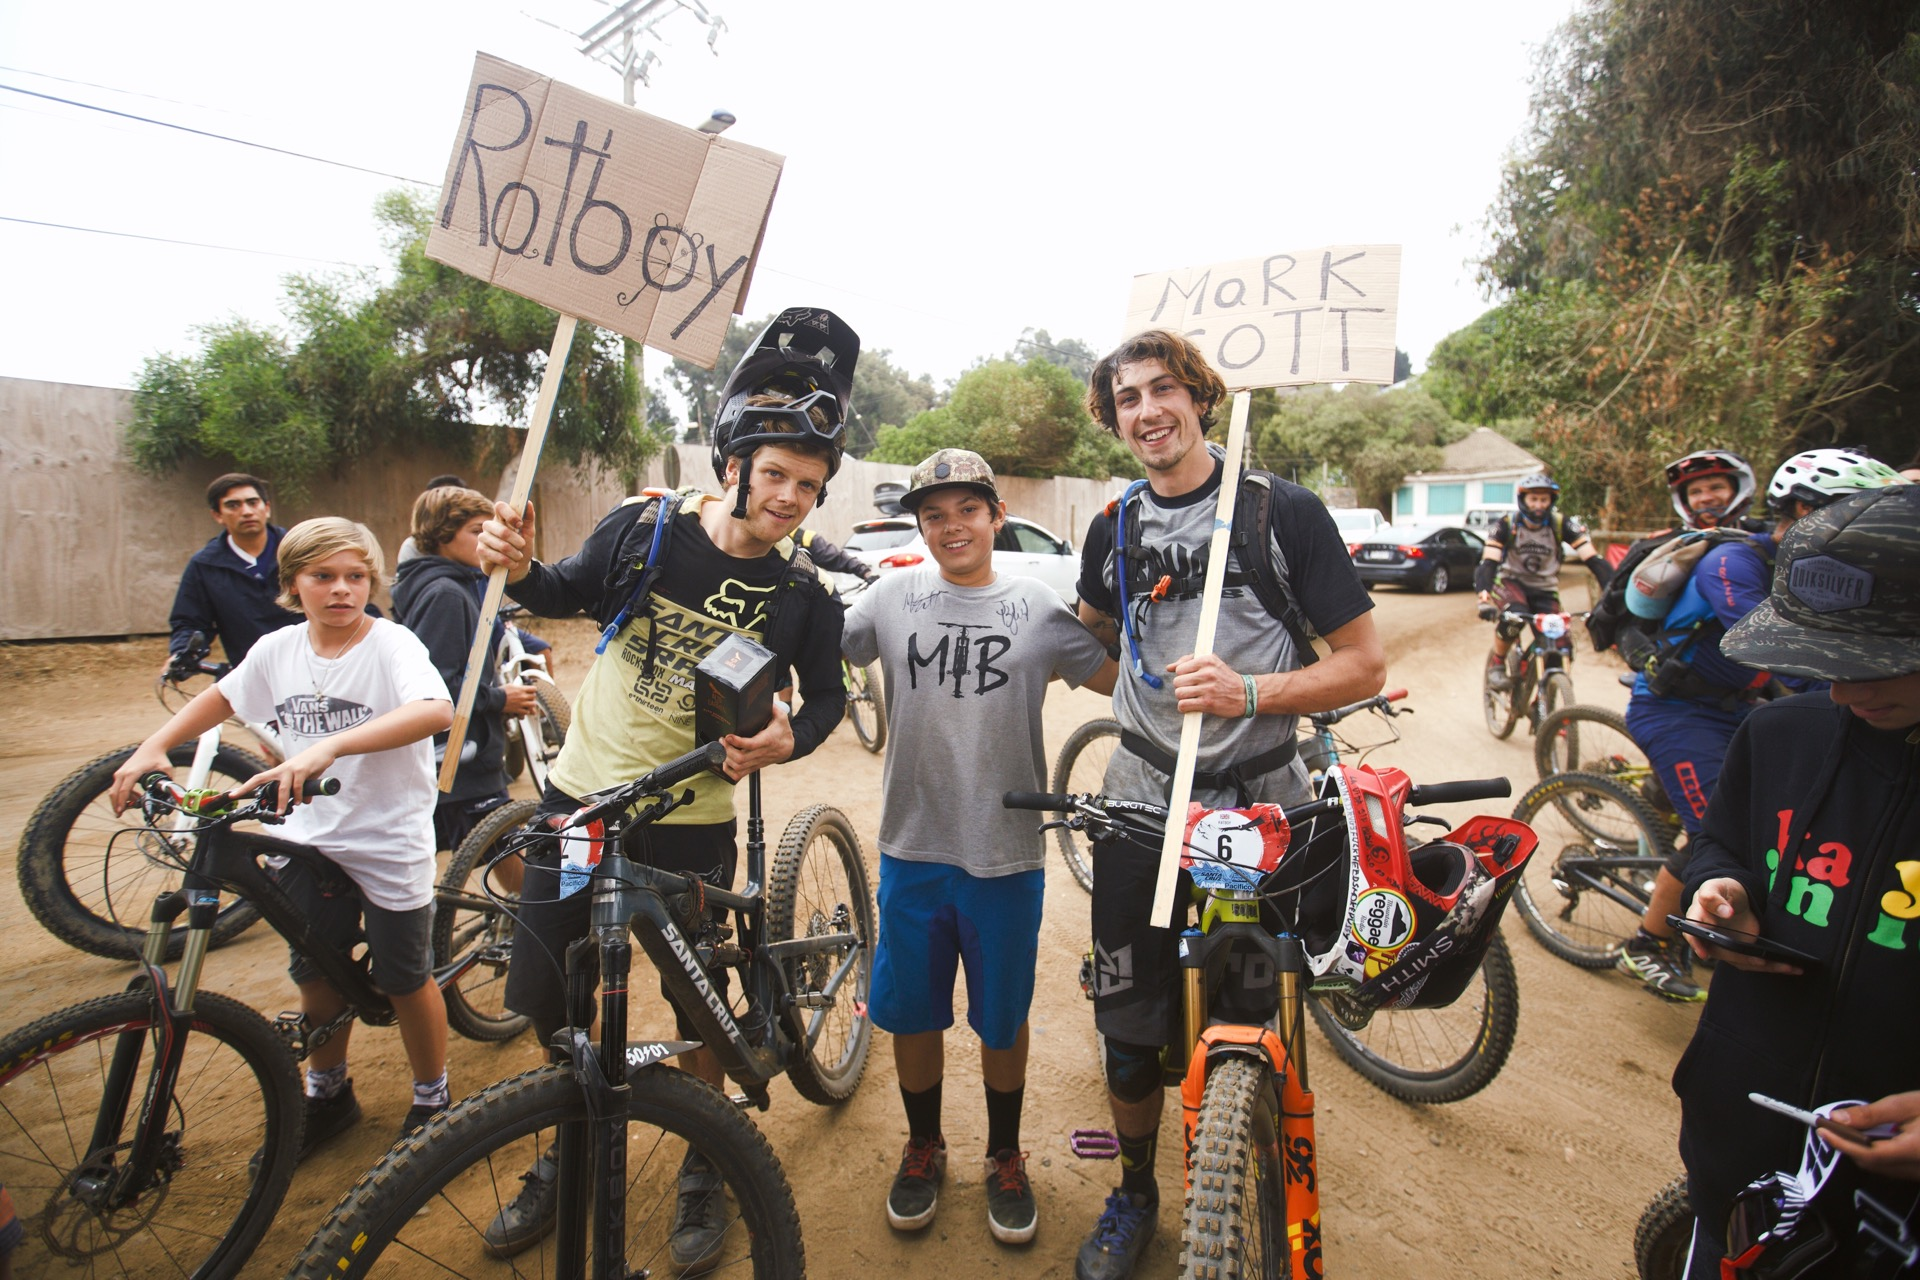 Santa Cruz Bicycles - Mark Scott and Josh Bryceland Hanging Out with the Fans at Andes Pacifico